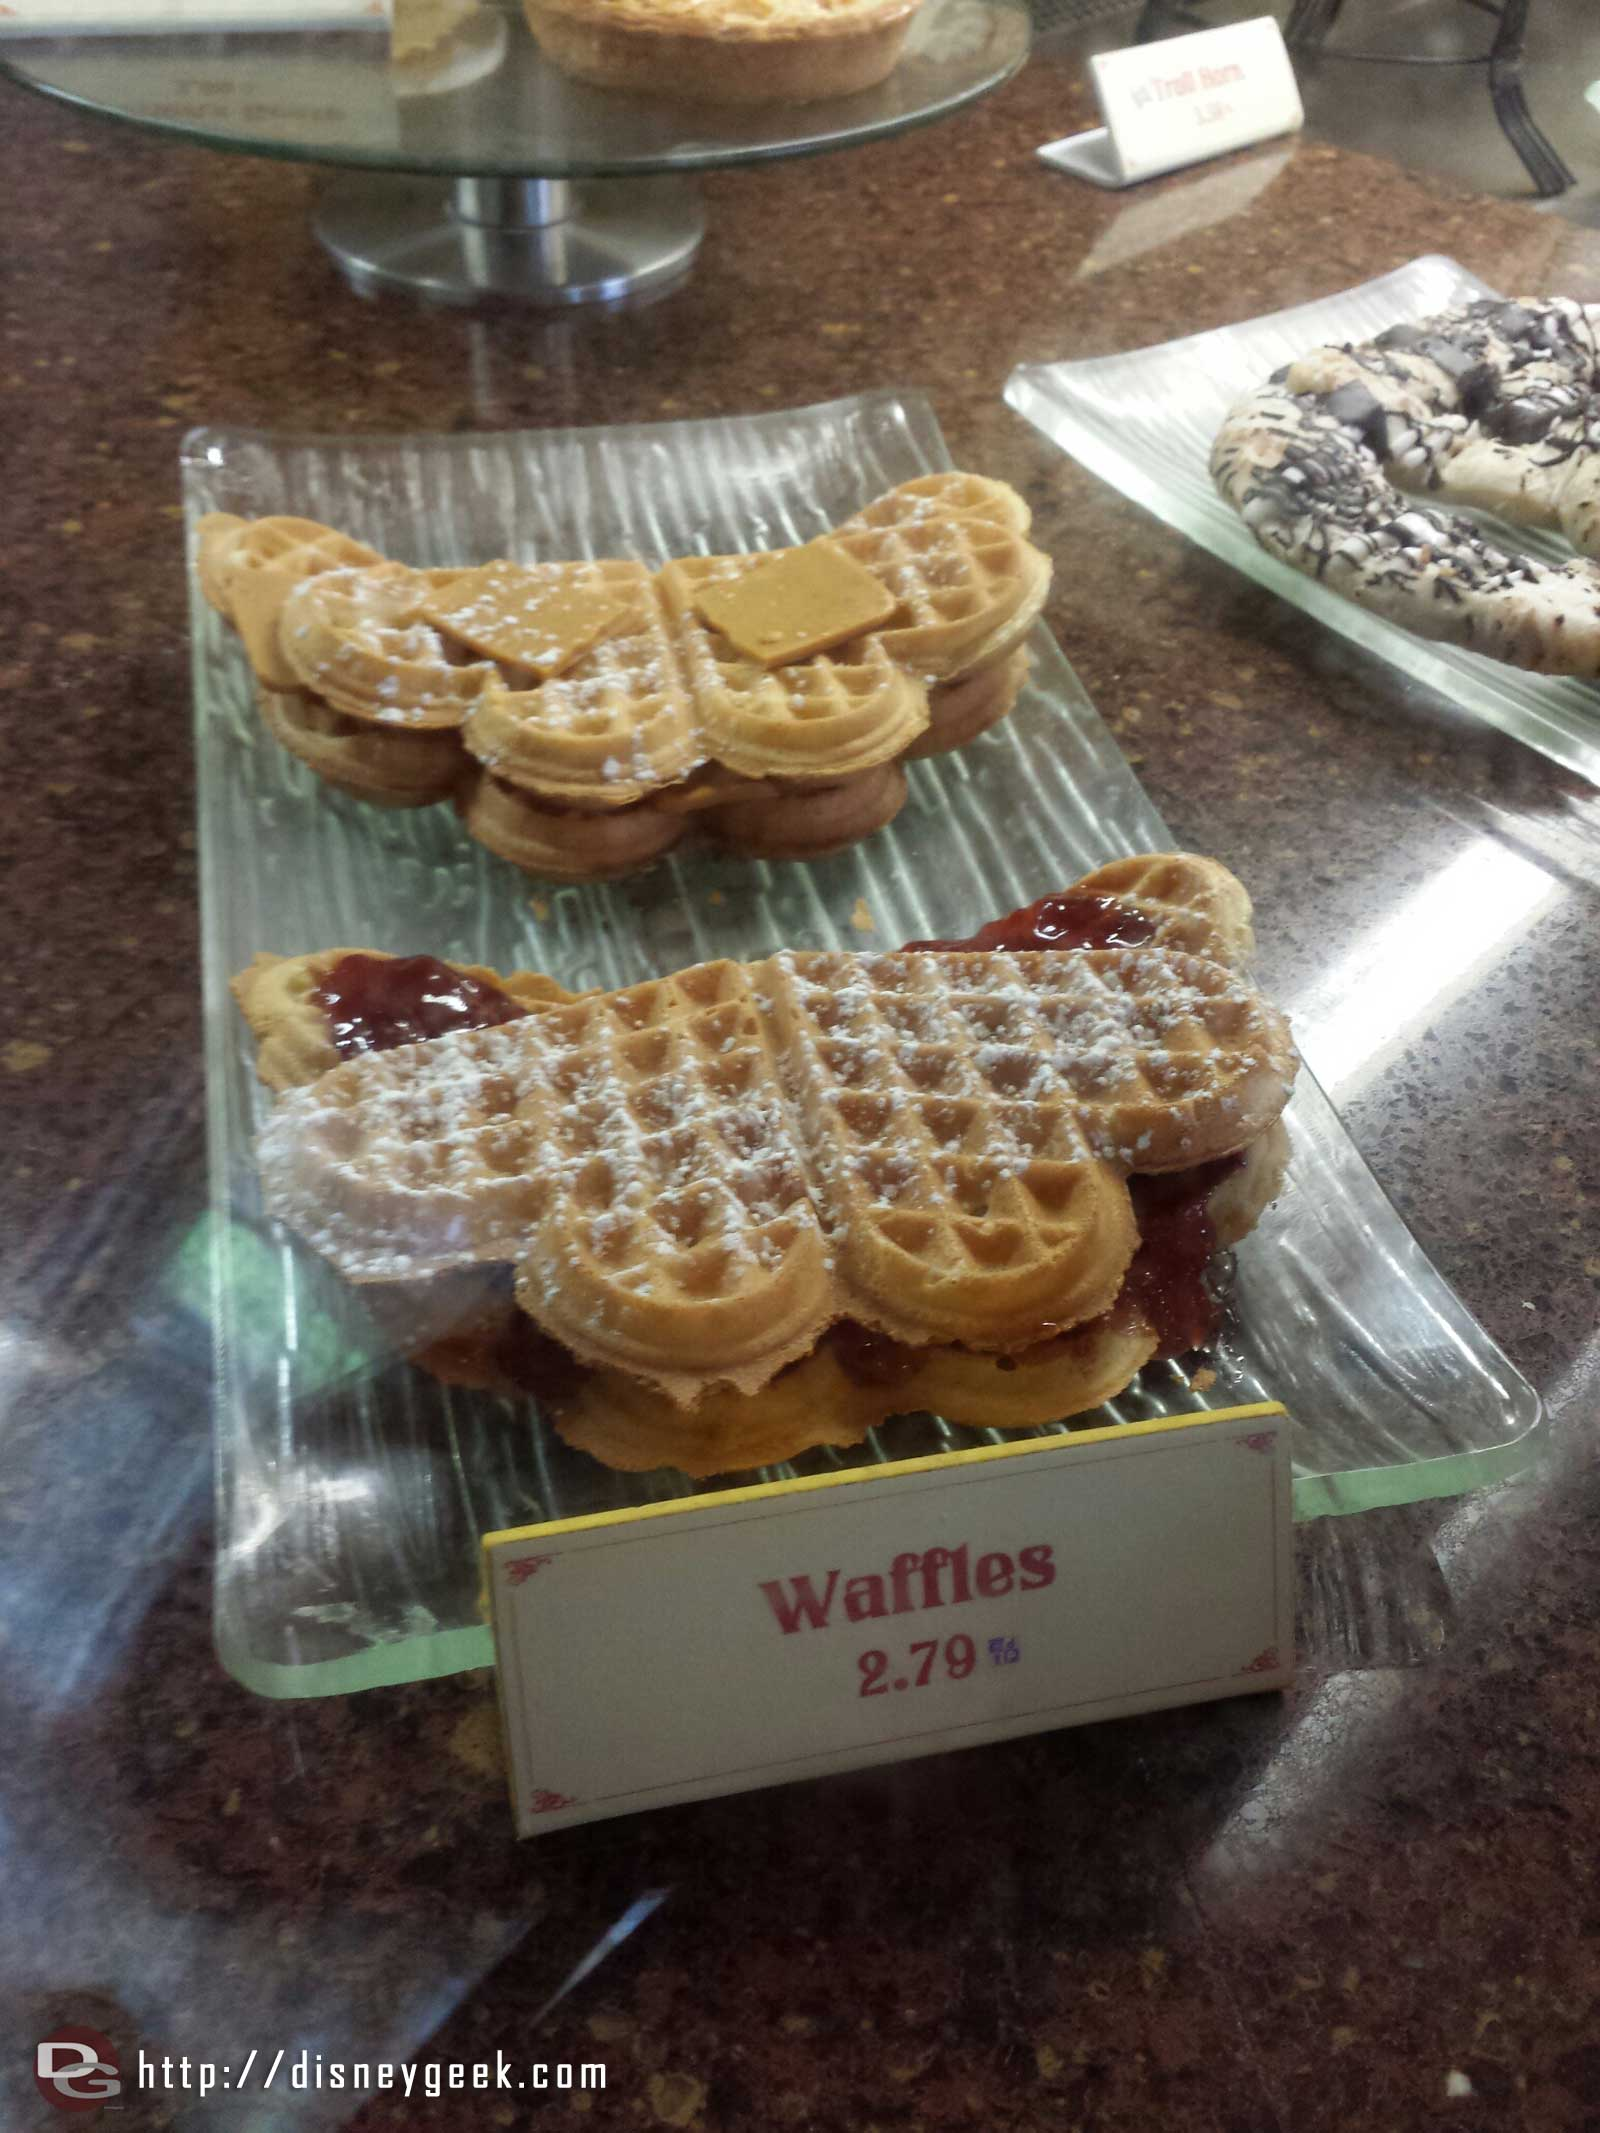 Waffles at Kringla in Norway